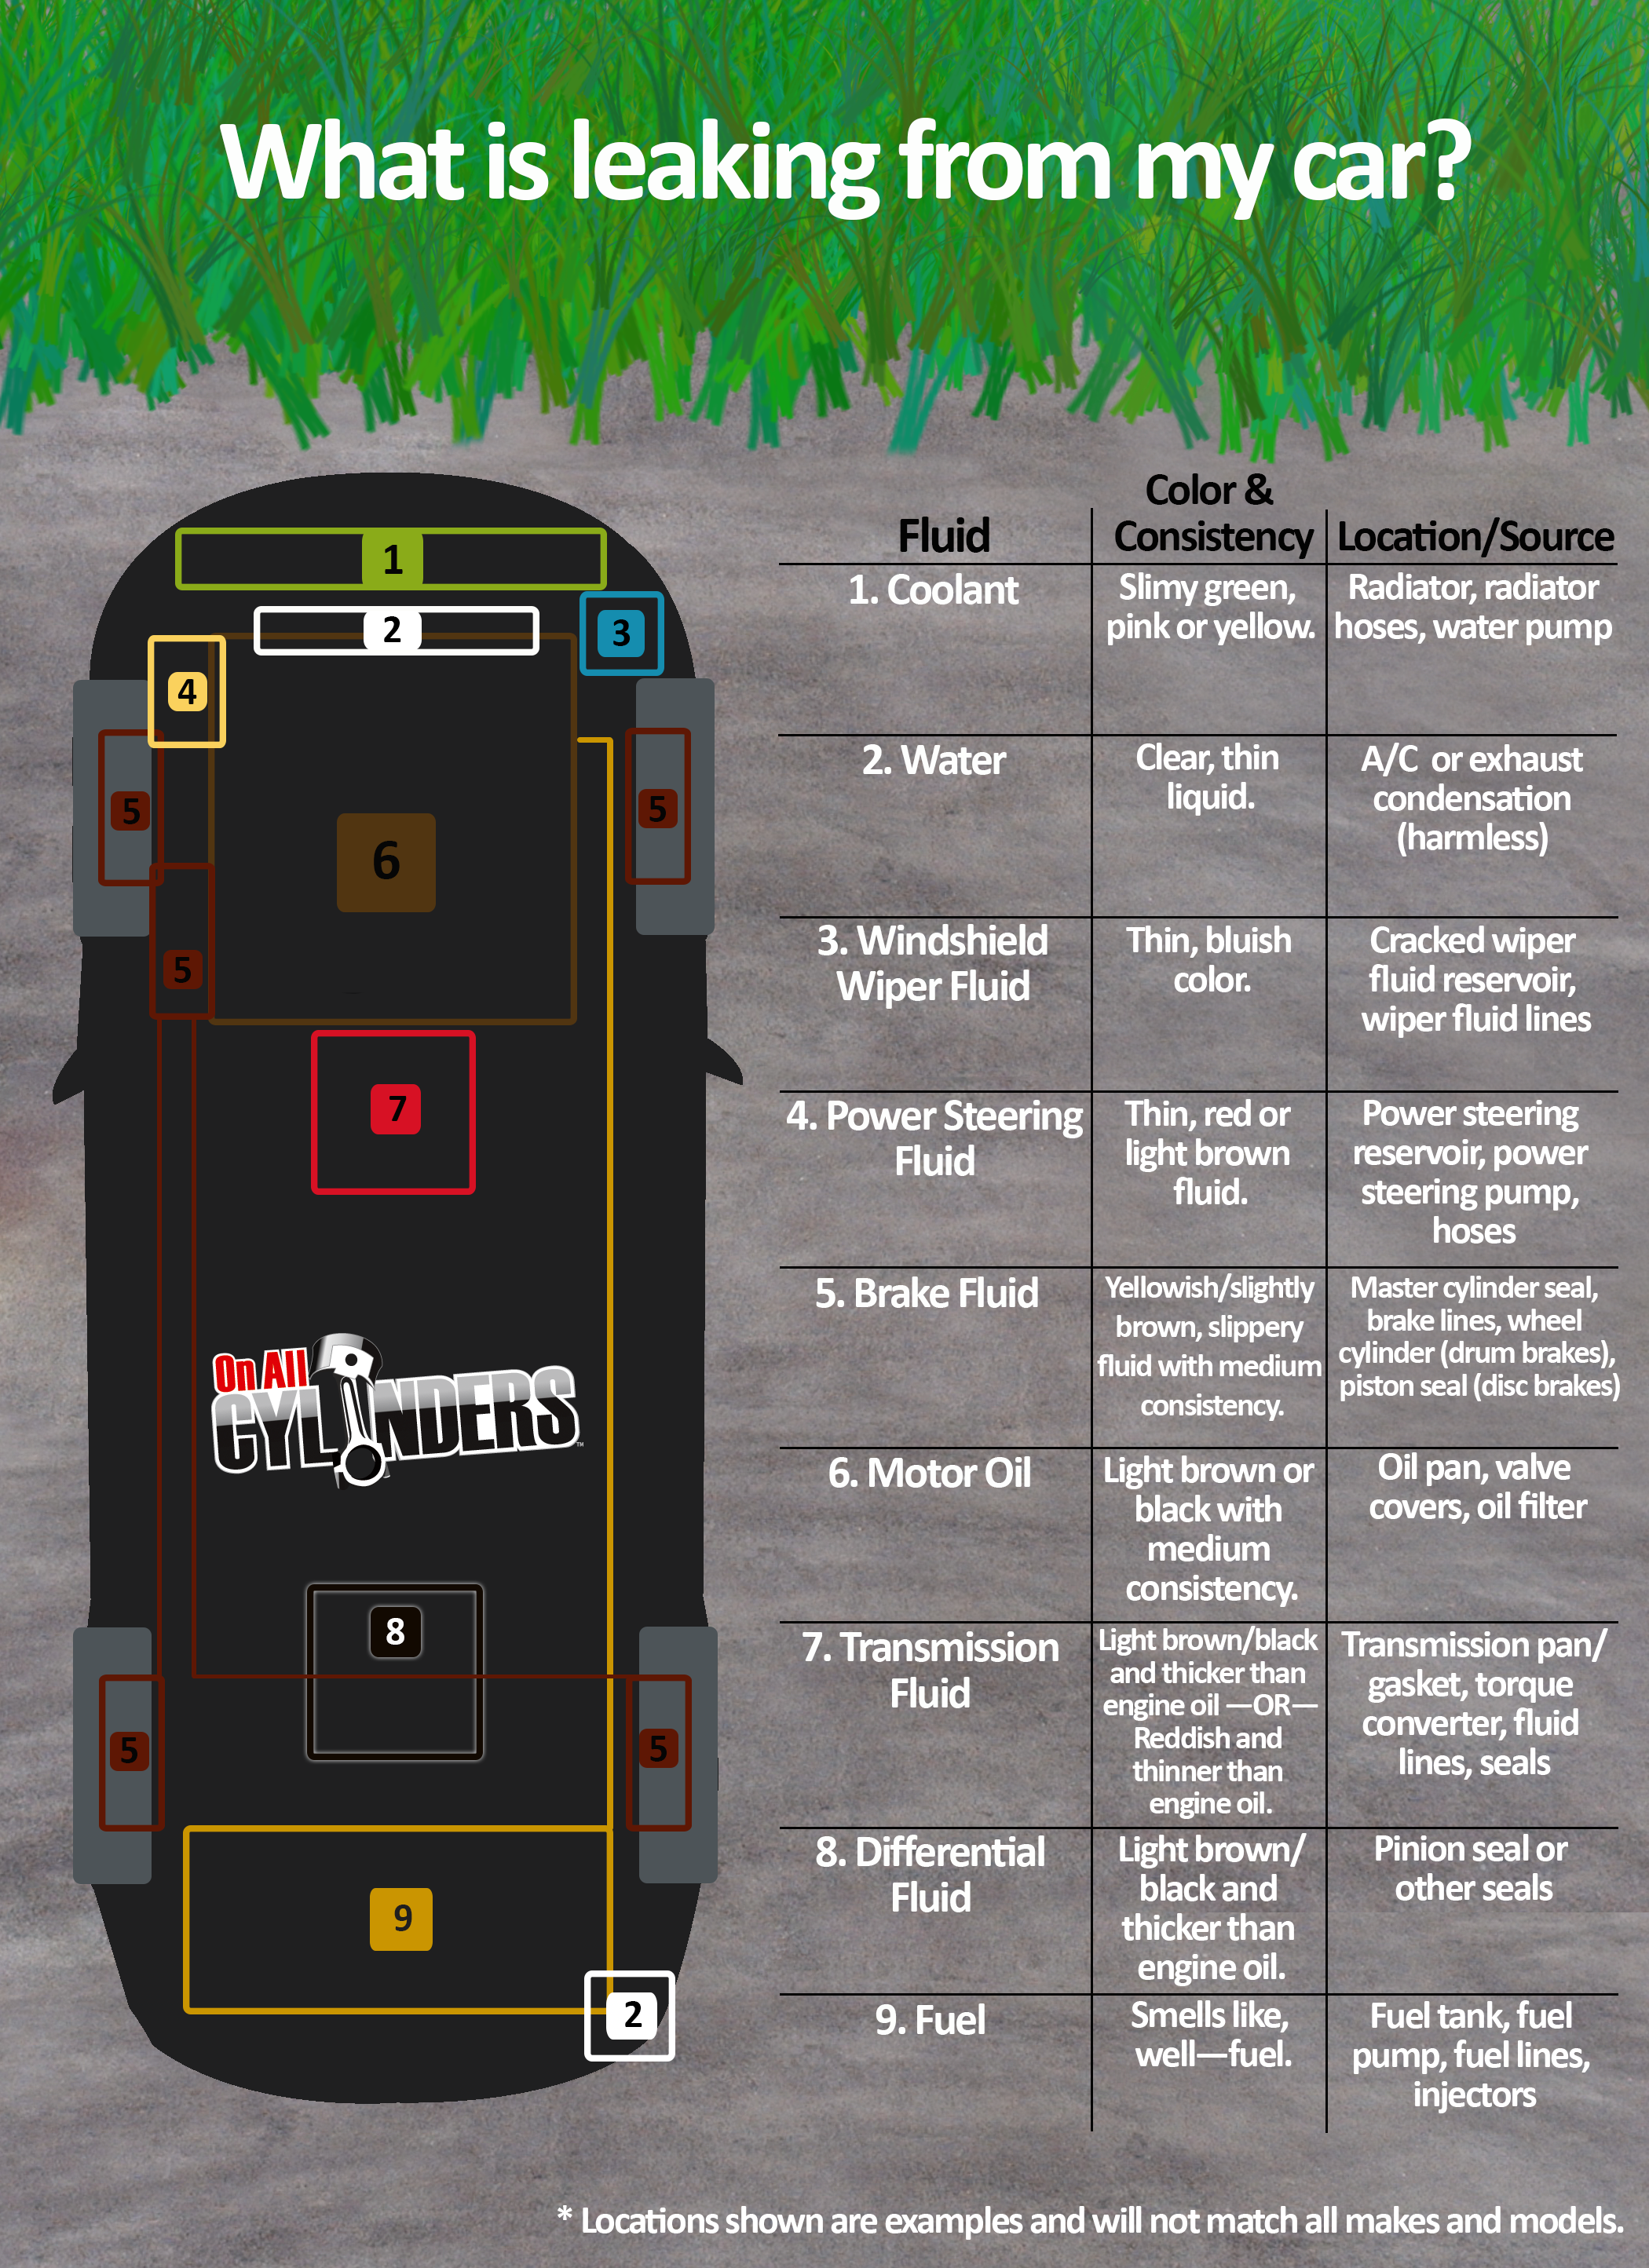 How To Change The Oil In Your Car >> Infographic: A Quick Guide to Identifying the Source of Fluid Leaks - OnAllCylinders